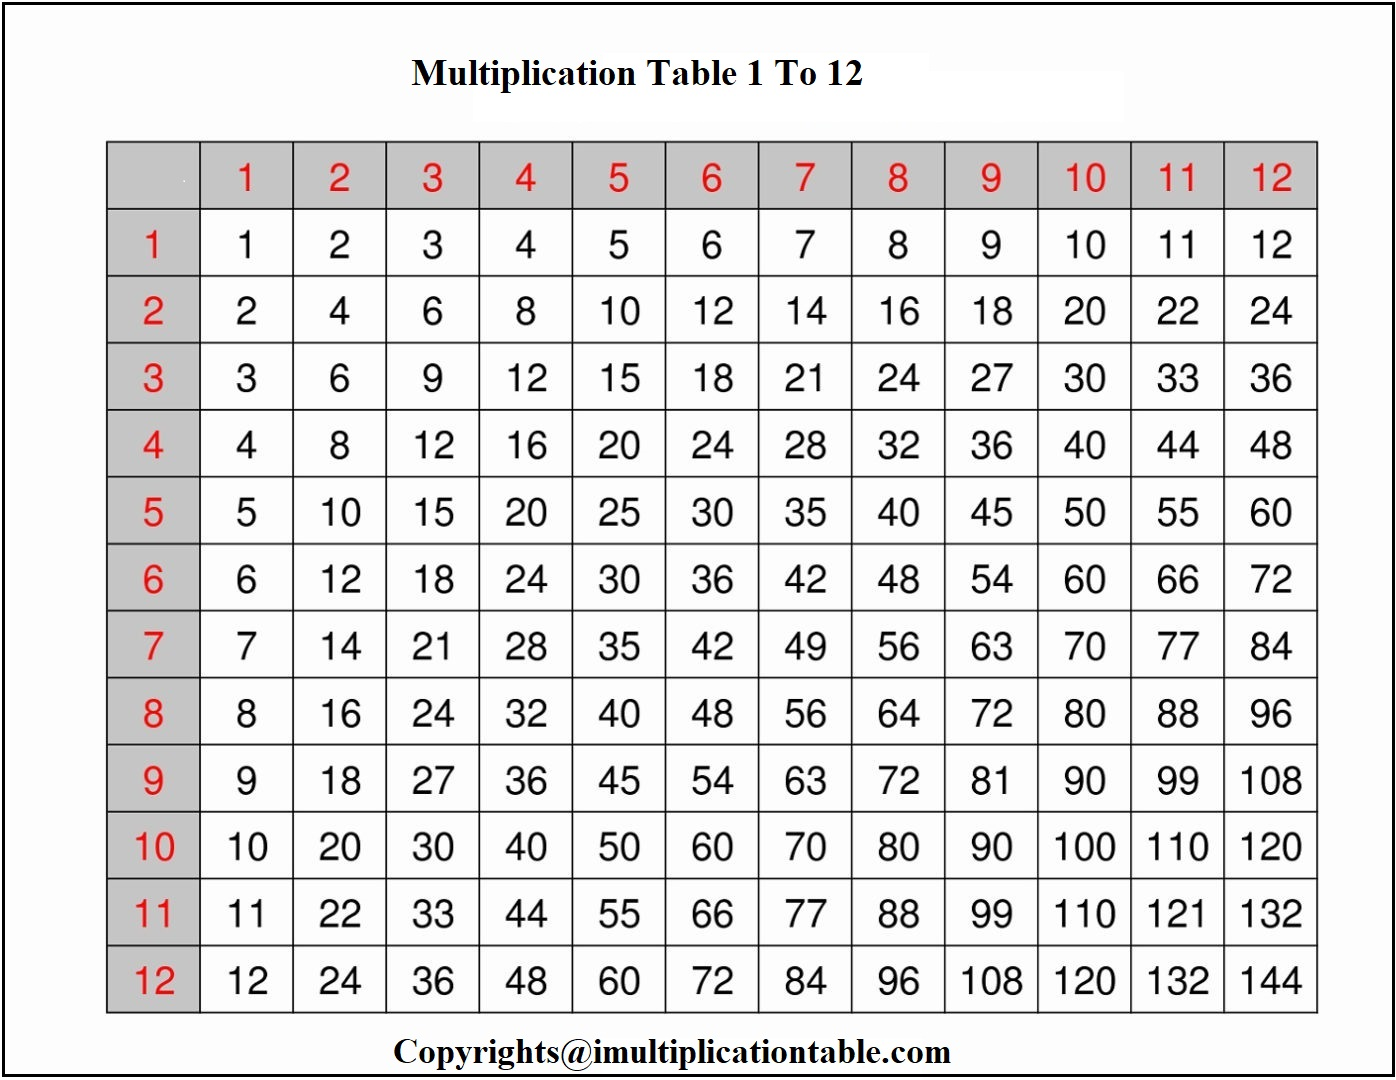 Multiplication Table 1 To 12